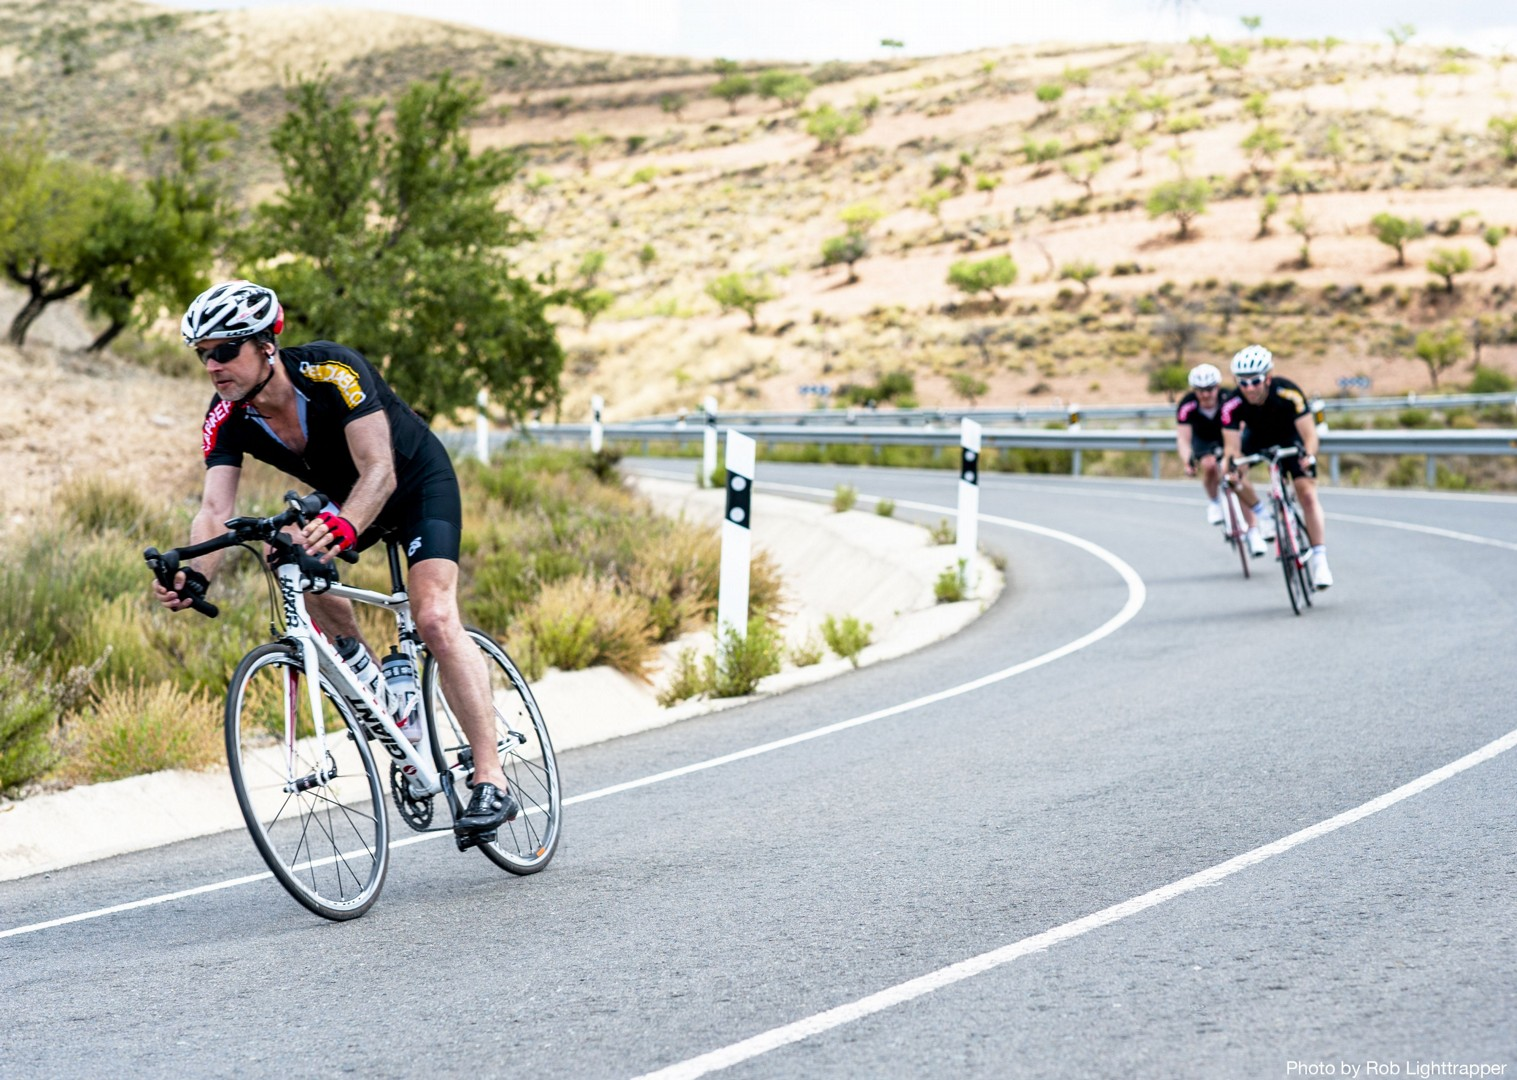 riding-cycling-holiday-in-spain-andalucia-cycle-Spanish-mountain-ranges.jpg - Southern Spain - Andalucia - Cape to Cape Traverse - Guided Road Cycling Holiday - Road Cycling